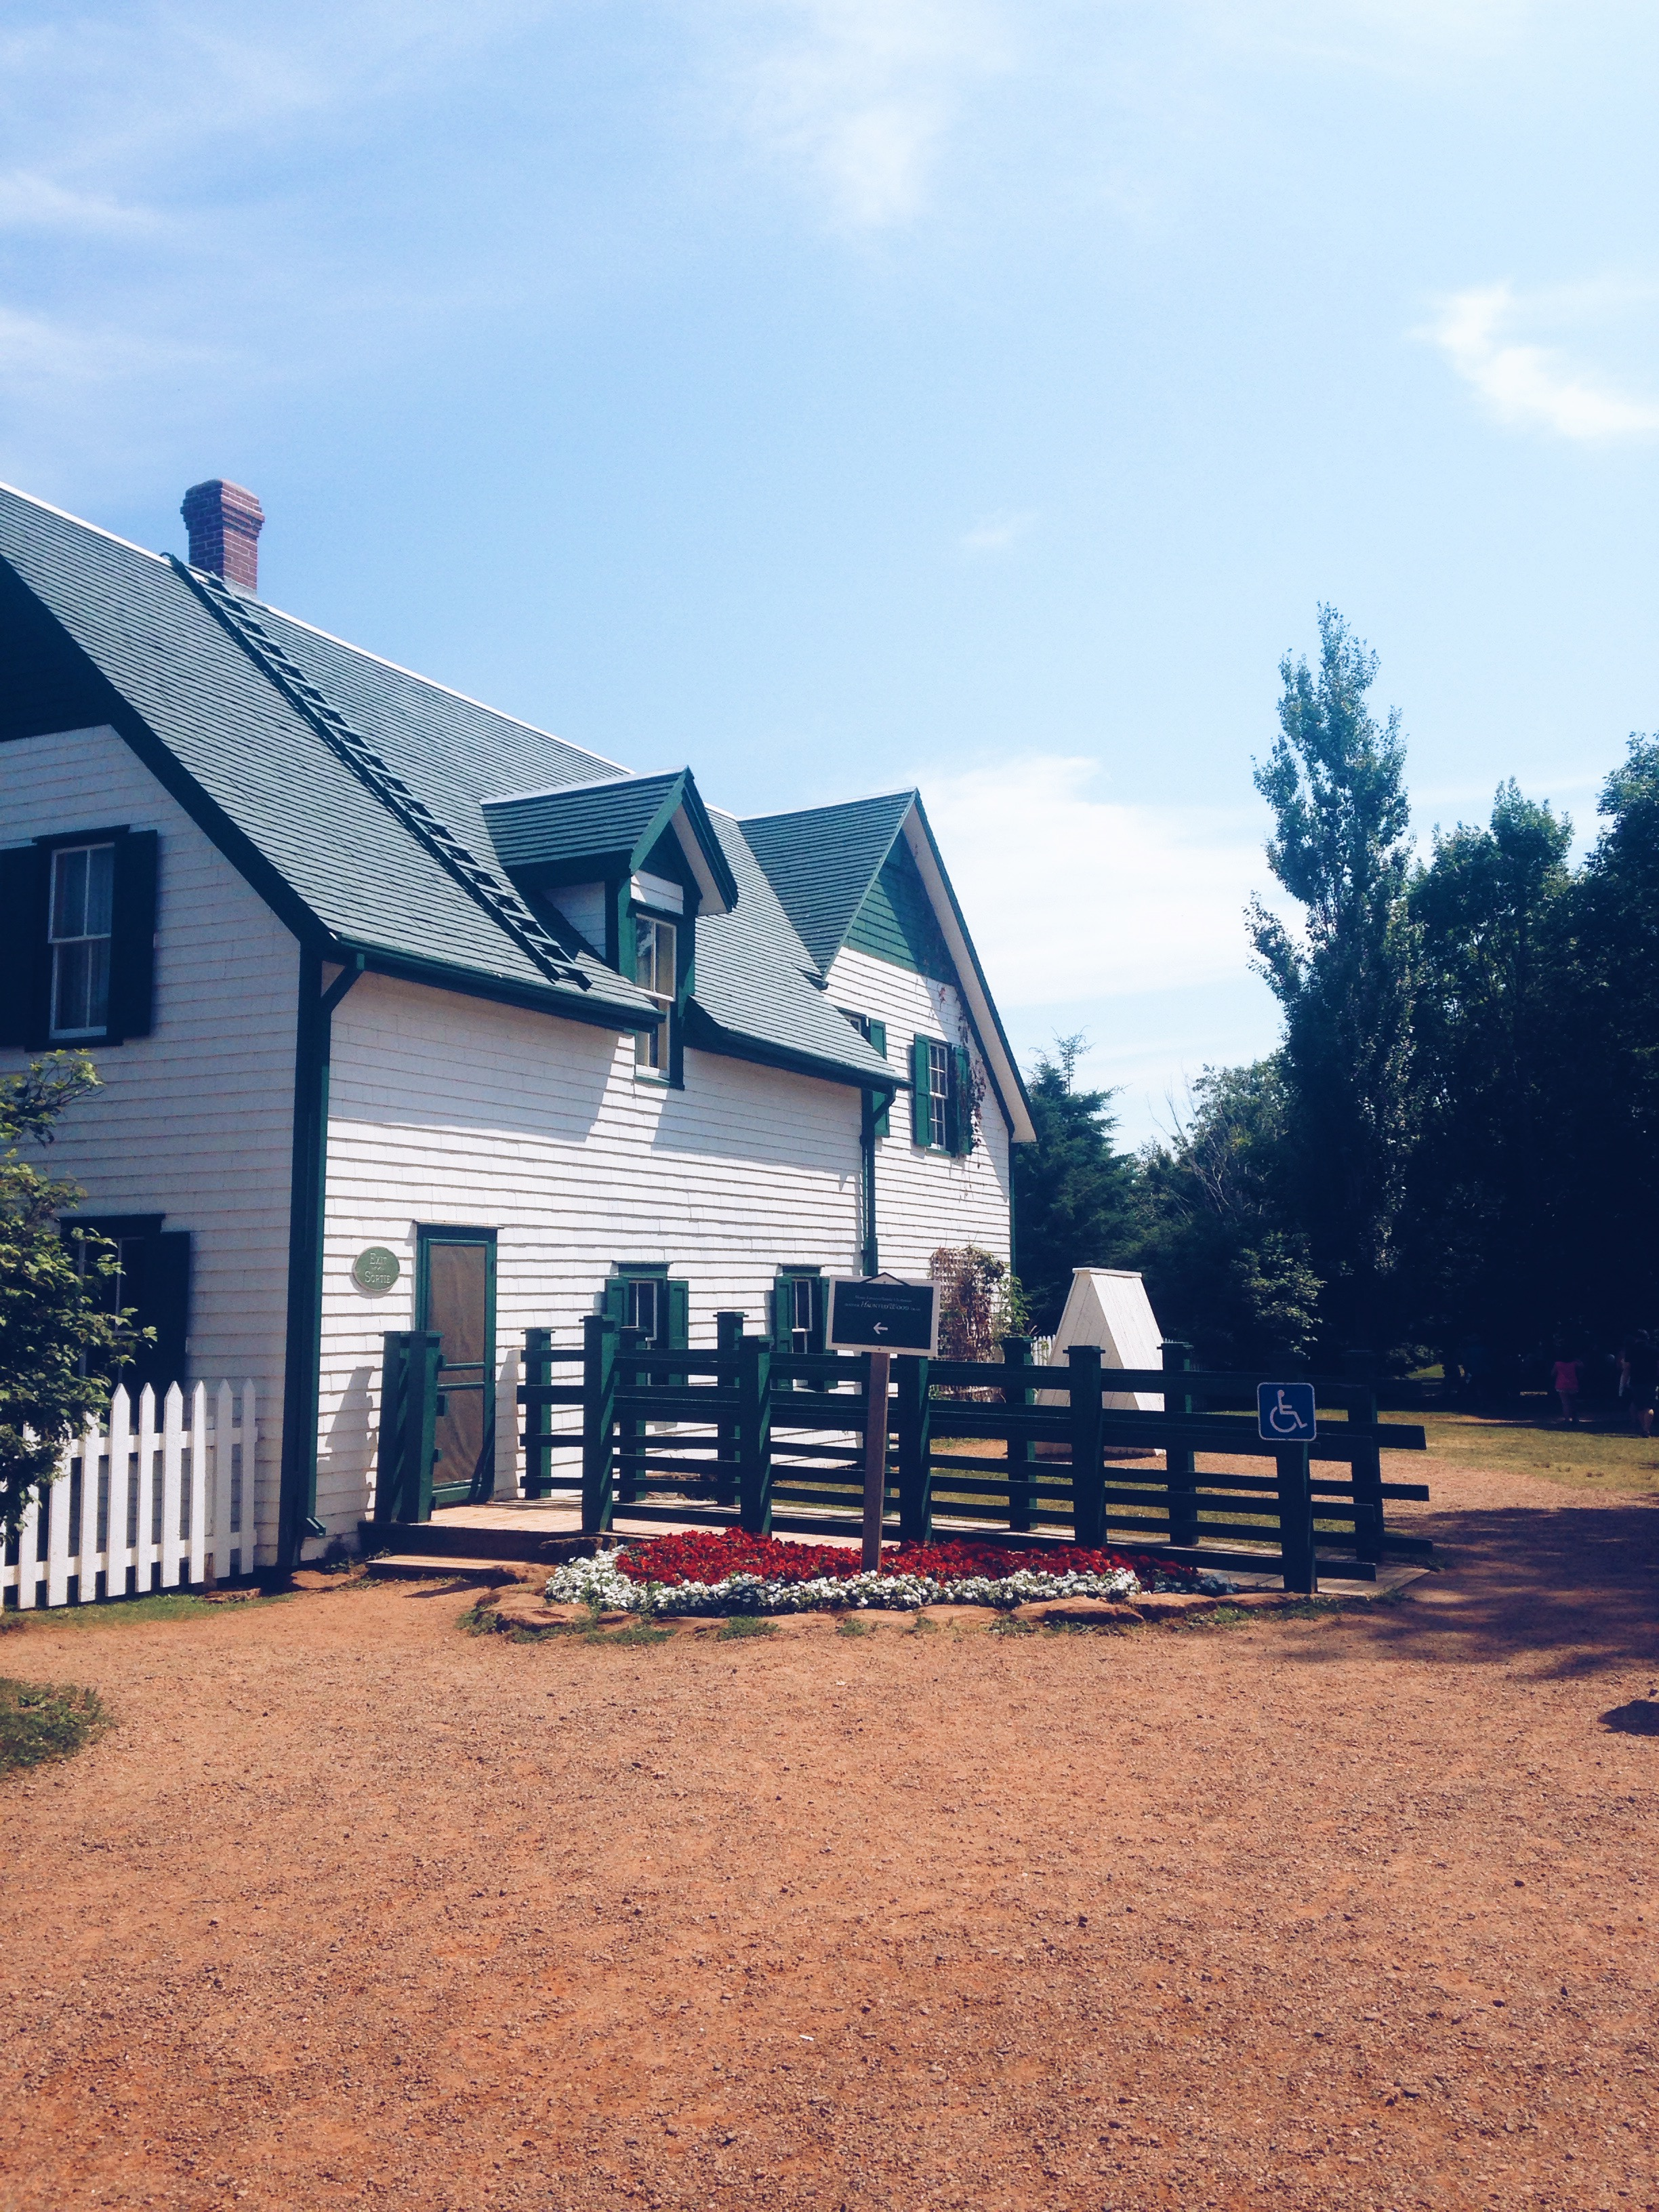 Anne of Green Gables House that inspired L.M Montgomery to write the novels